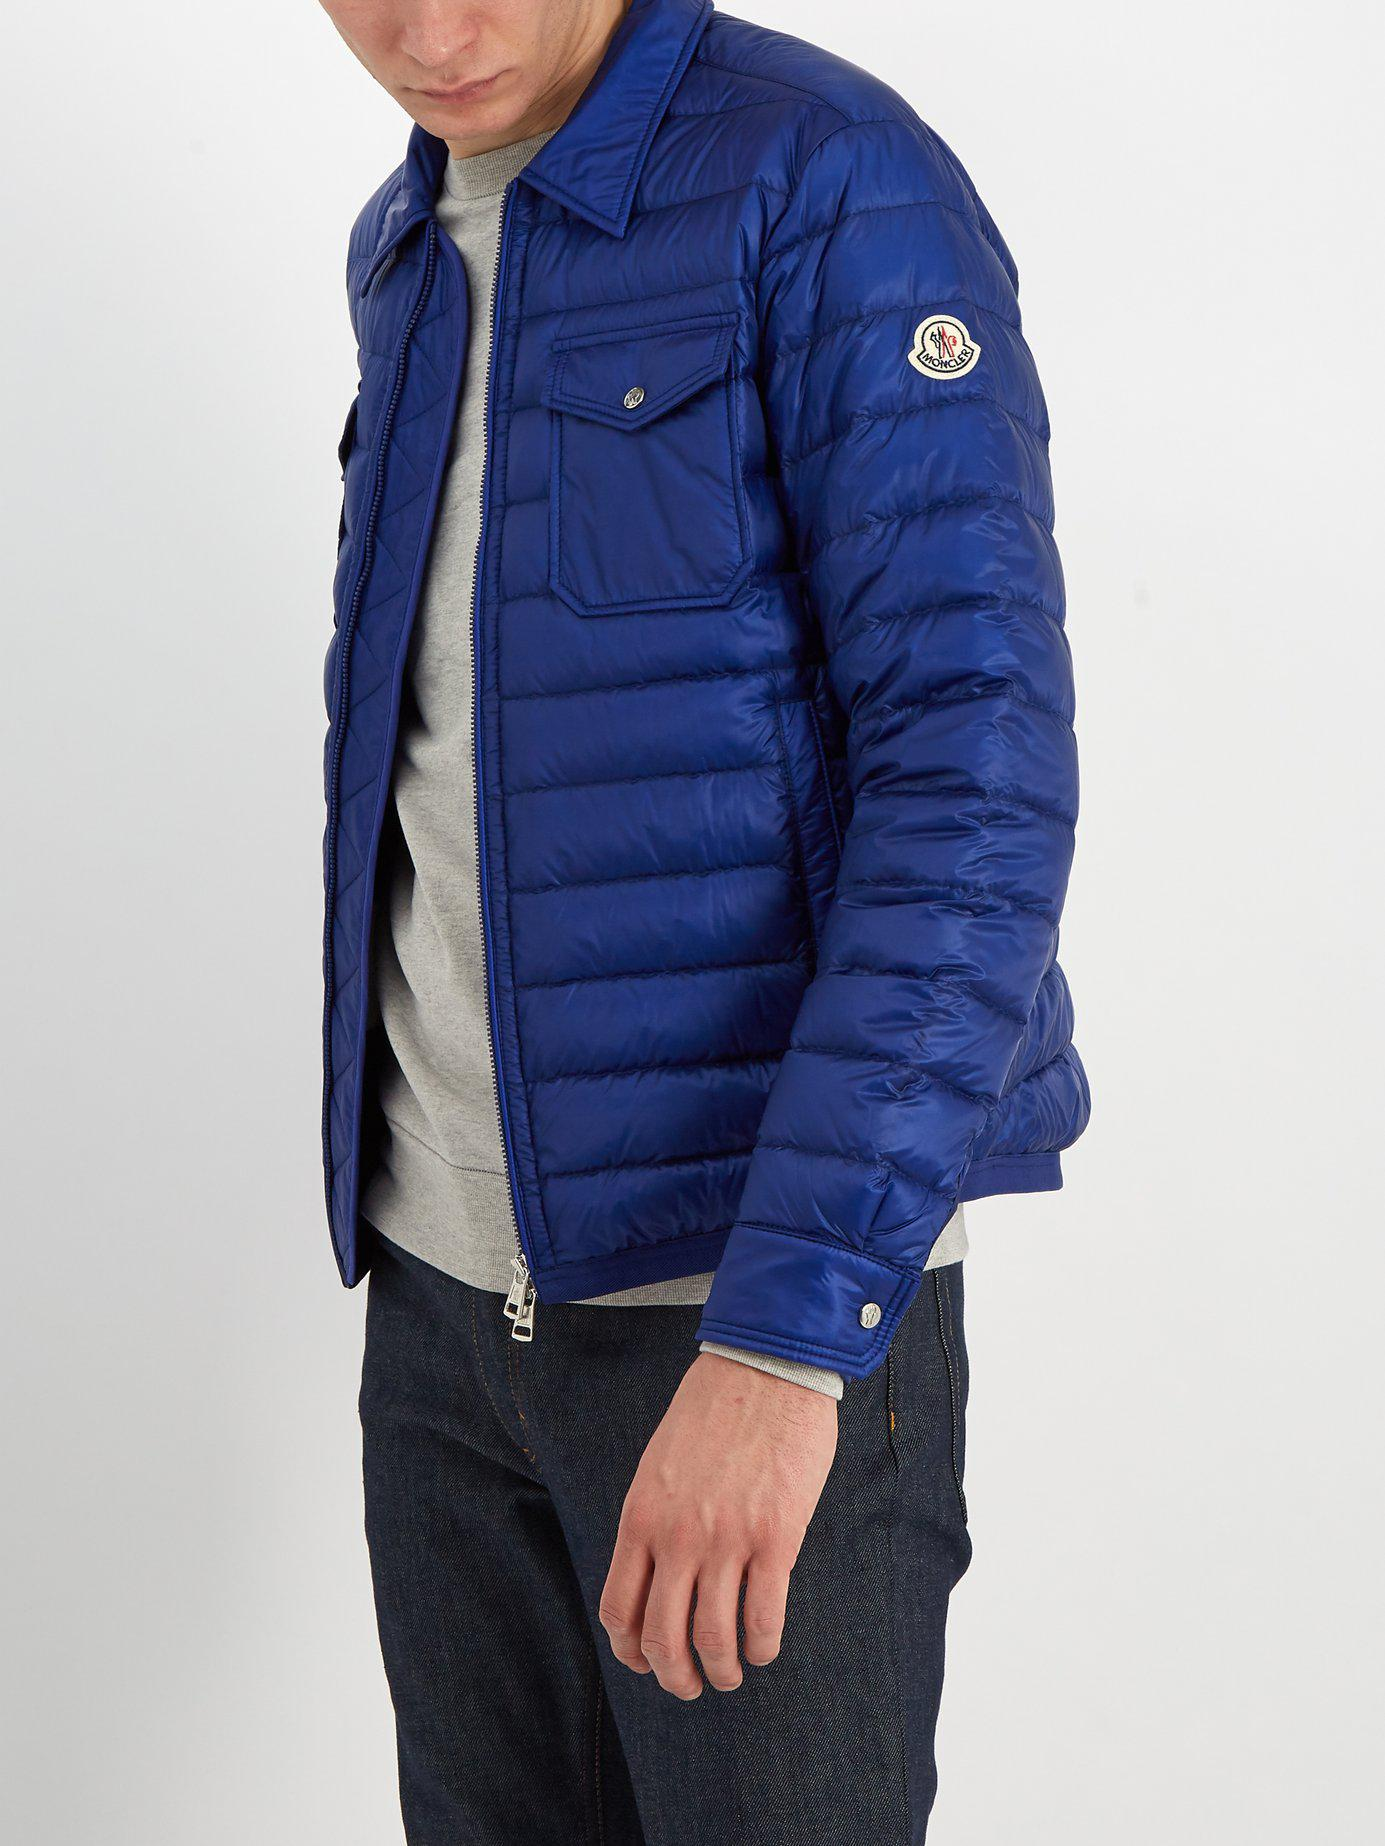 7c5098ff8 Lyst - Moncler Terence Quilted Down Jacket in Blue for Men